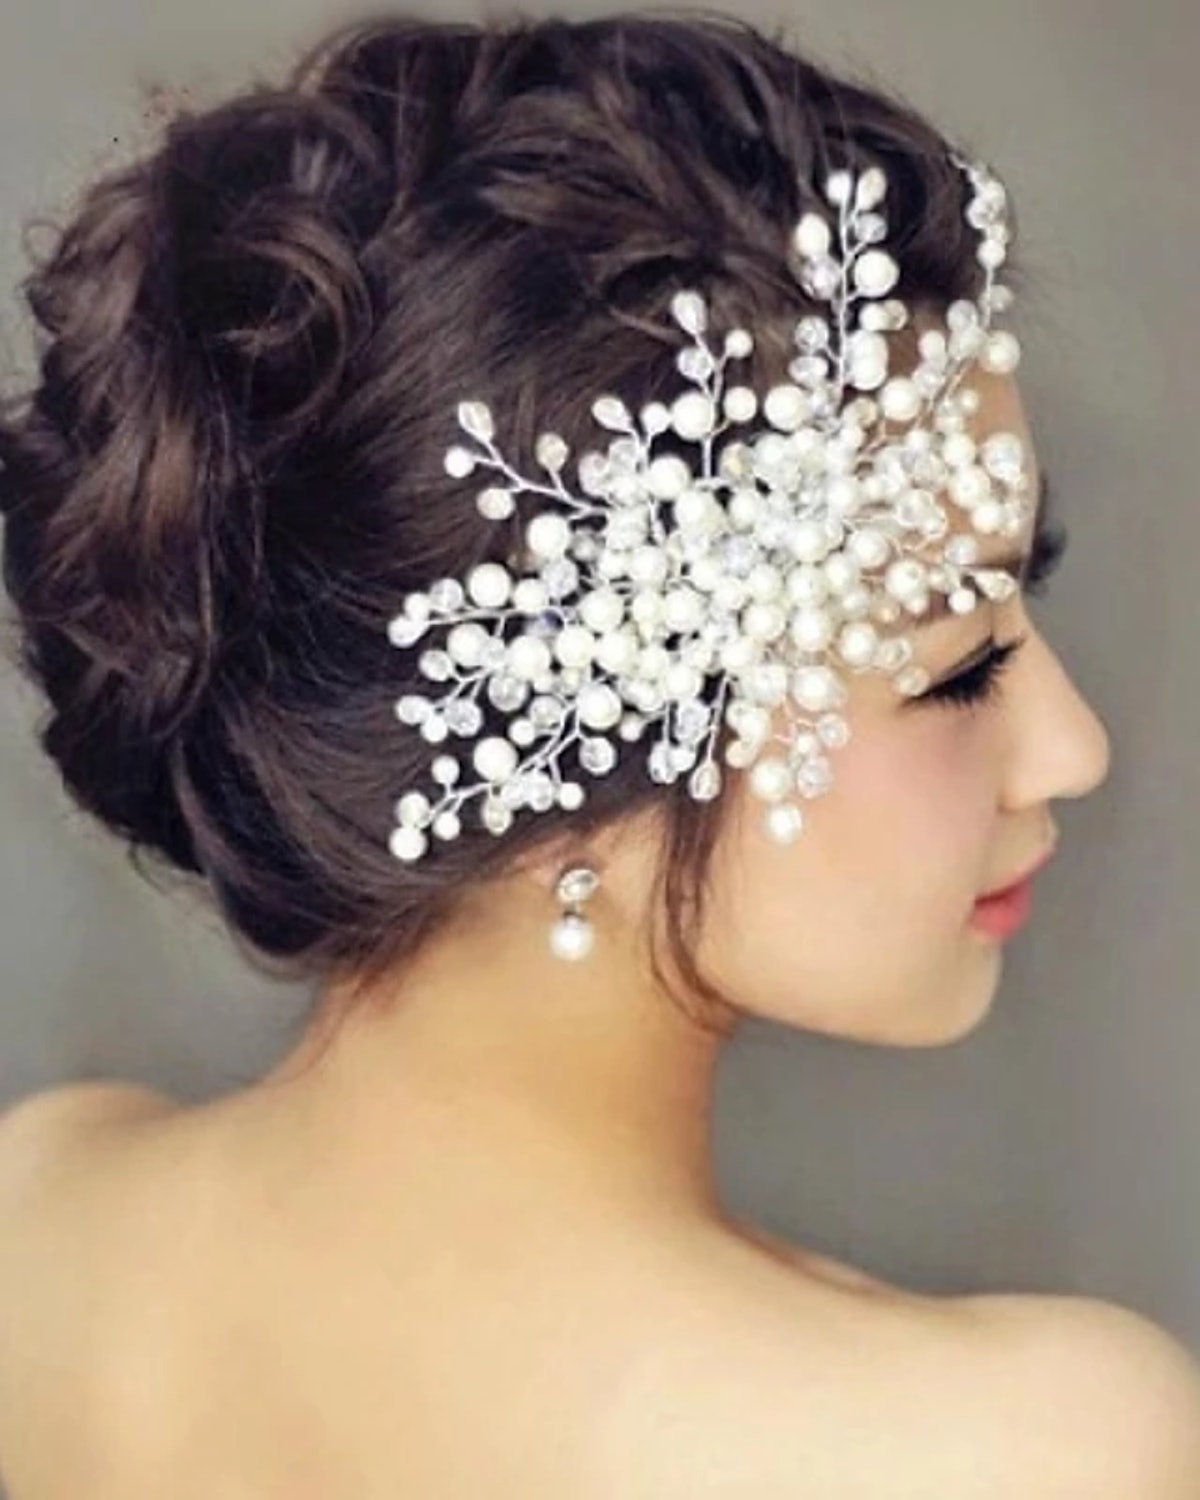 Light in the Box Pearl Hair Combs Headpiece Wedding Party Elegant Feminine Style